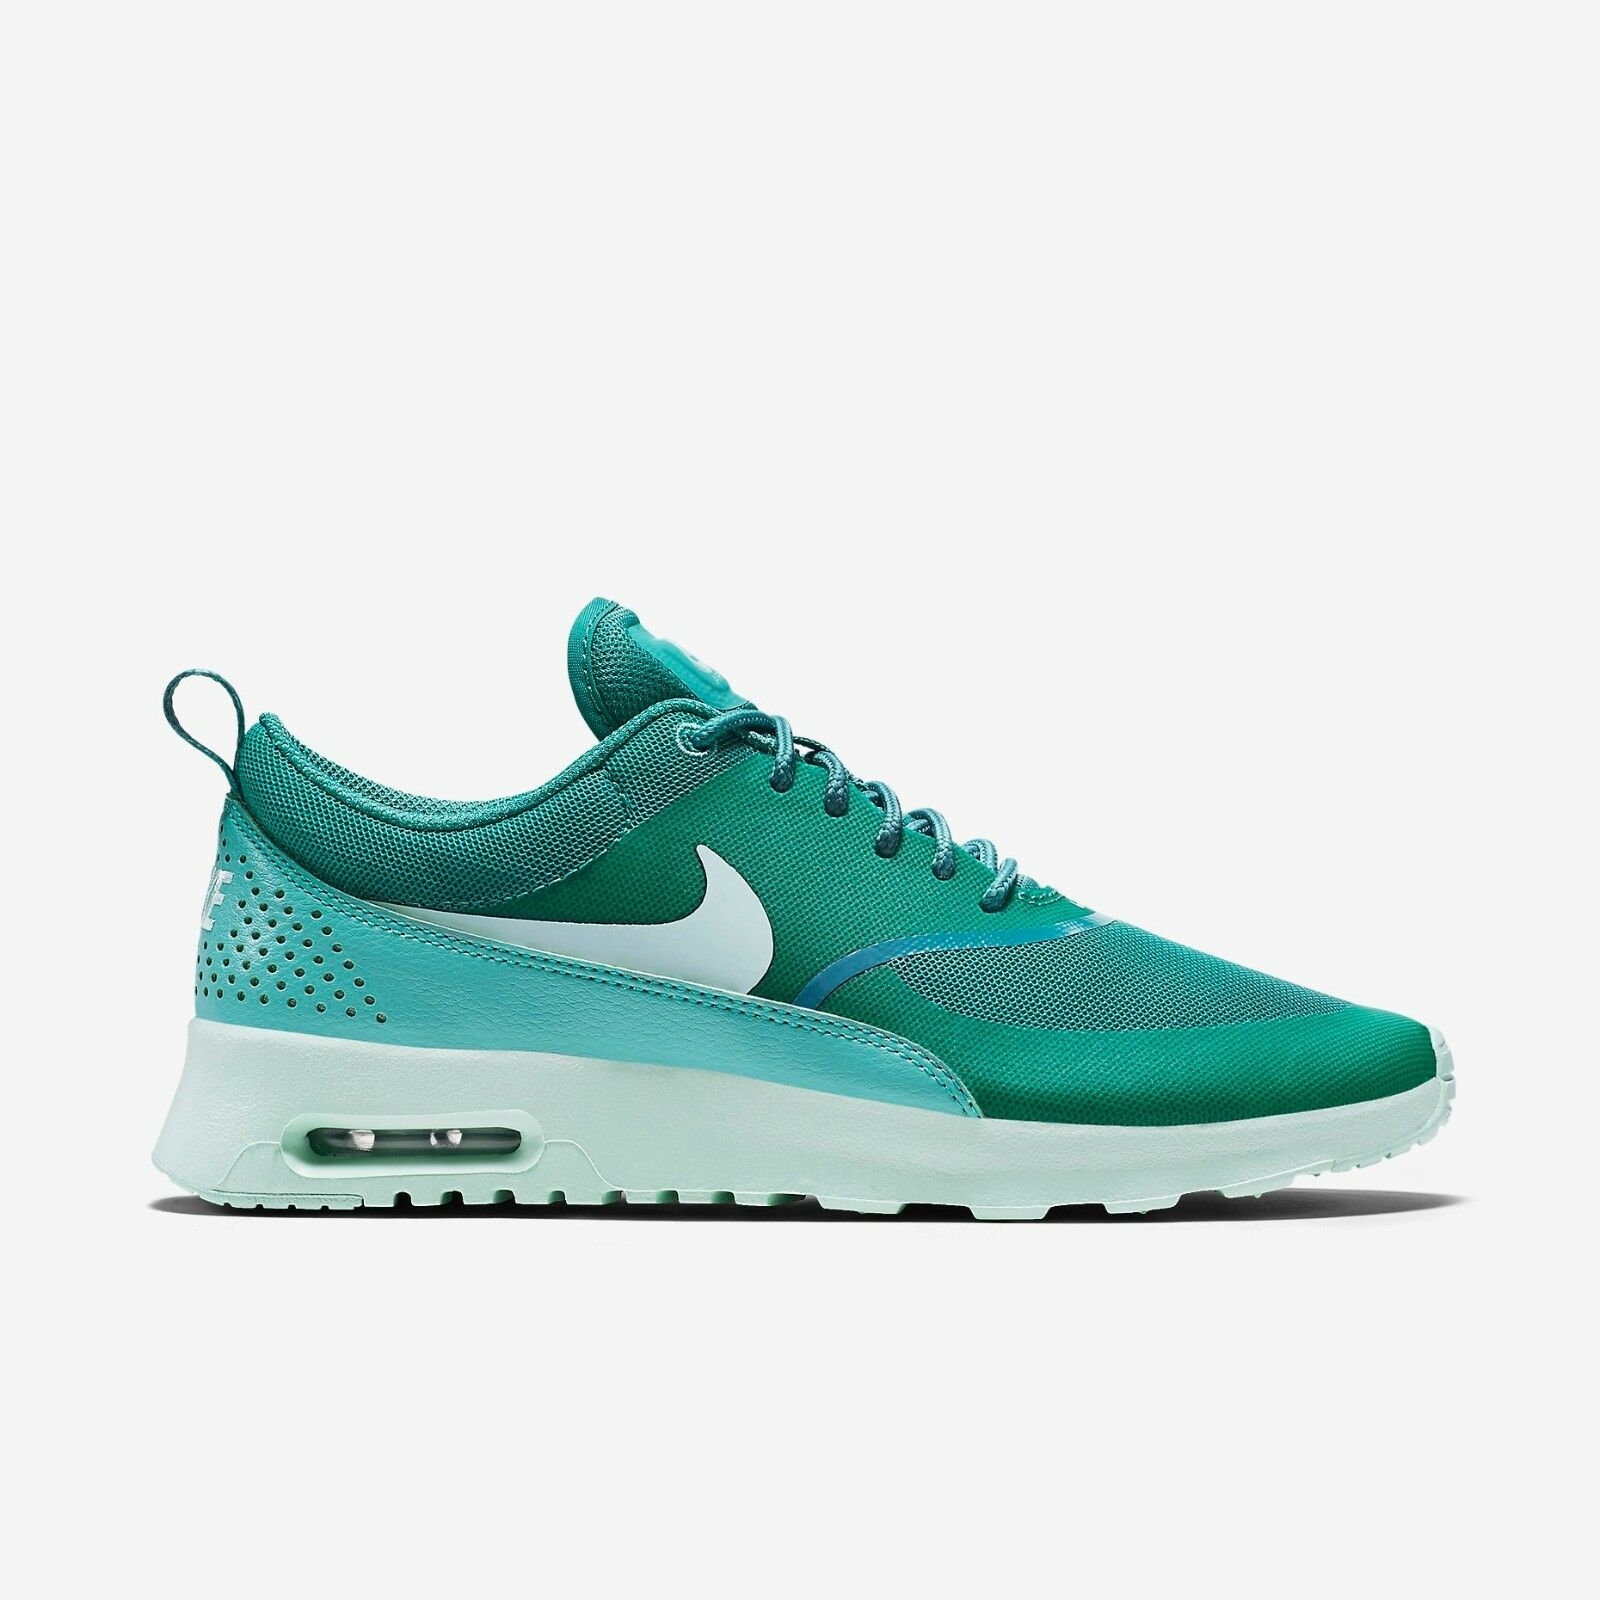 huge selection of 457e8 1aa31 New Nike Women s Air Max Thea Shoes (599409-408) (599409-408